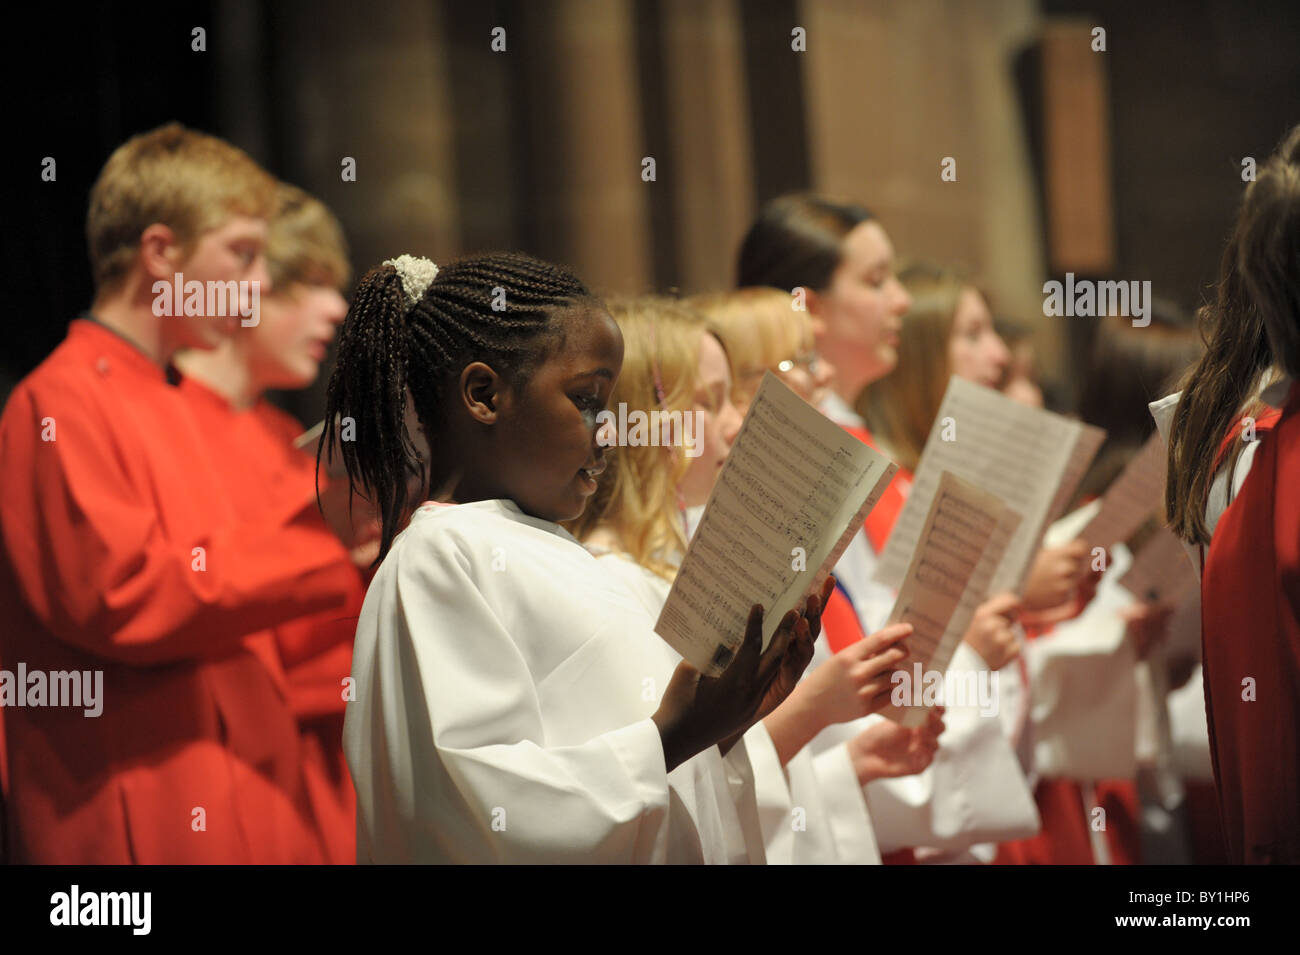 Church choir with black and white children in cassocks holding sheet music practising for a choral concert - Stock Image